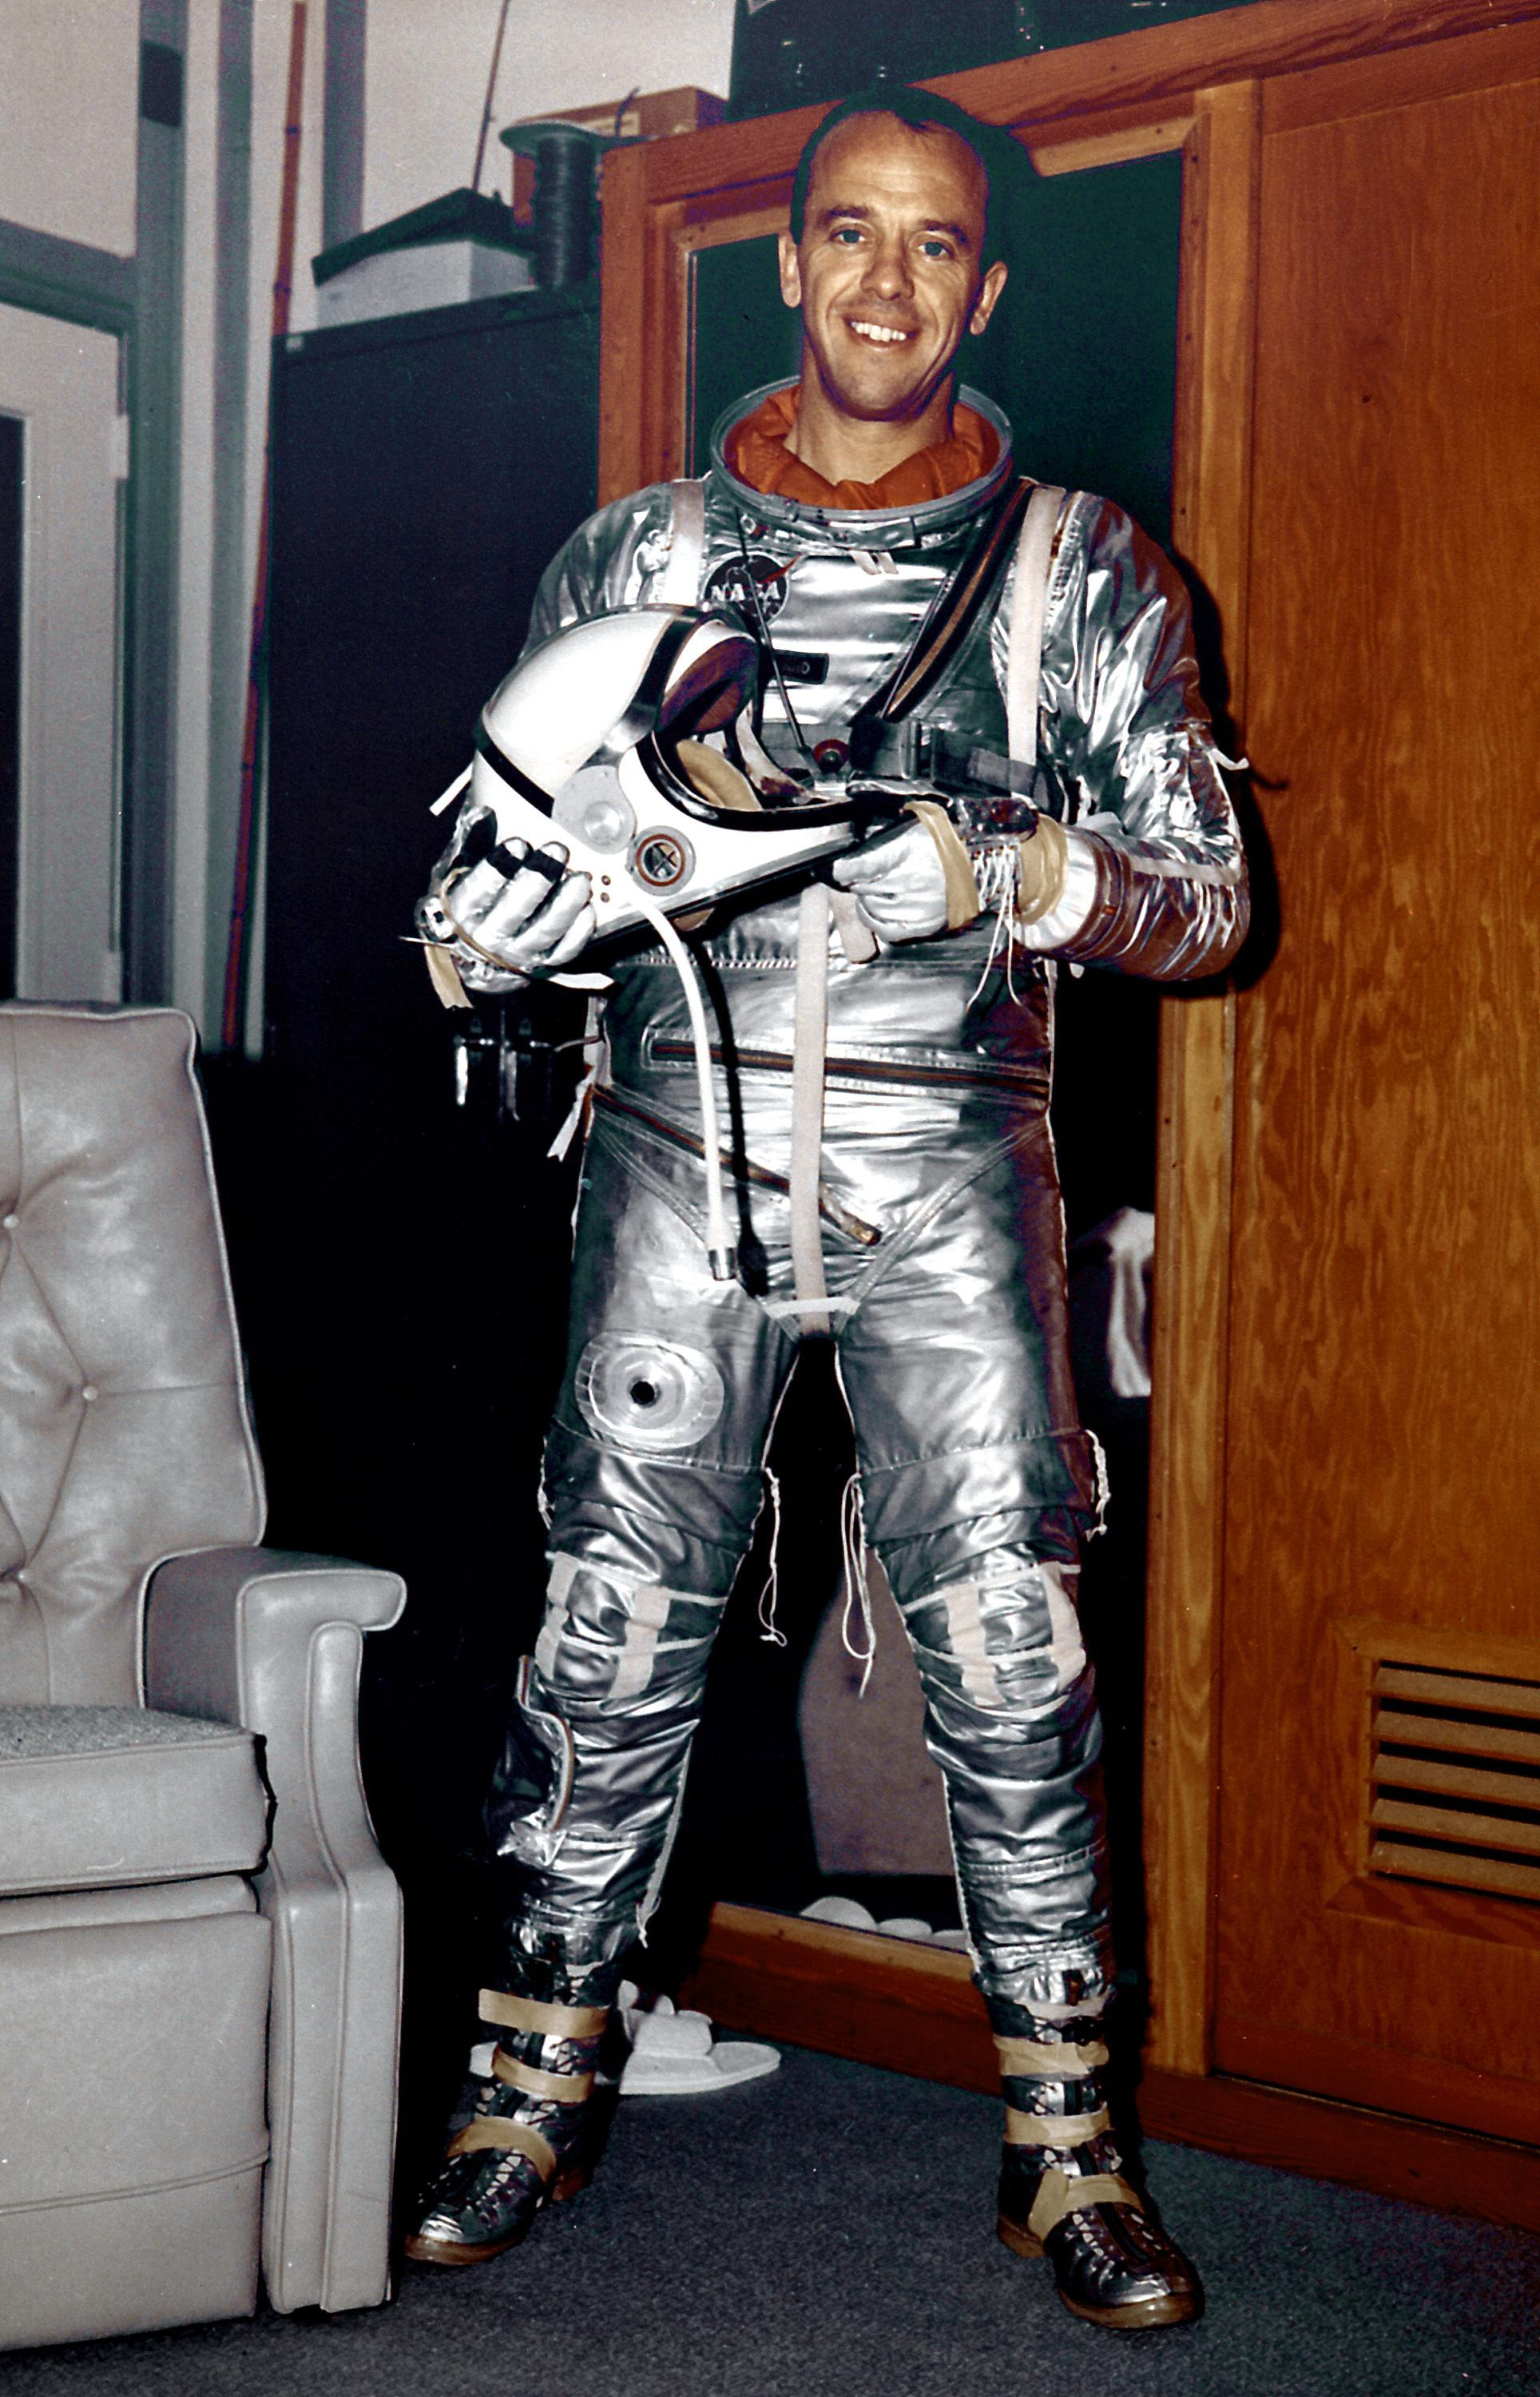 alan shepard before nasa - photo #30